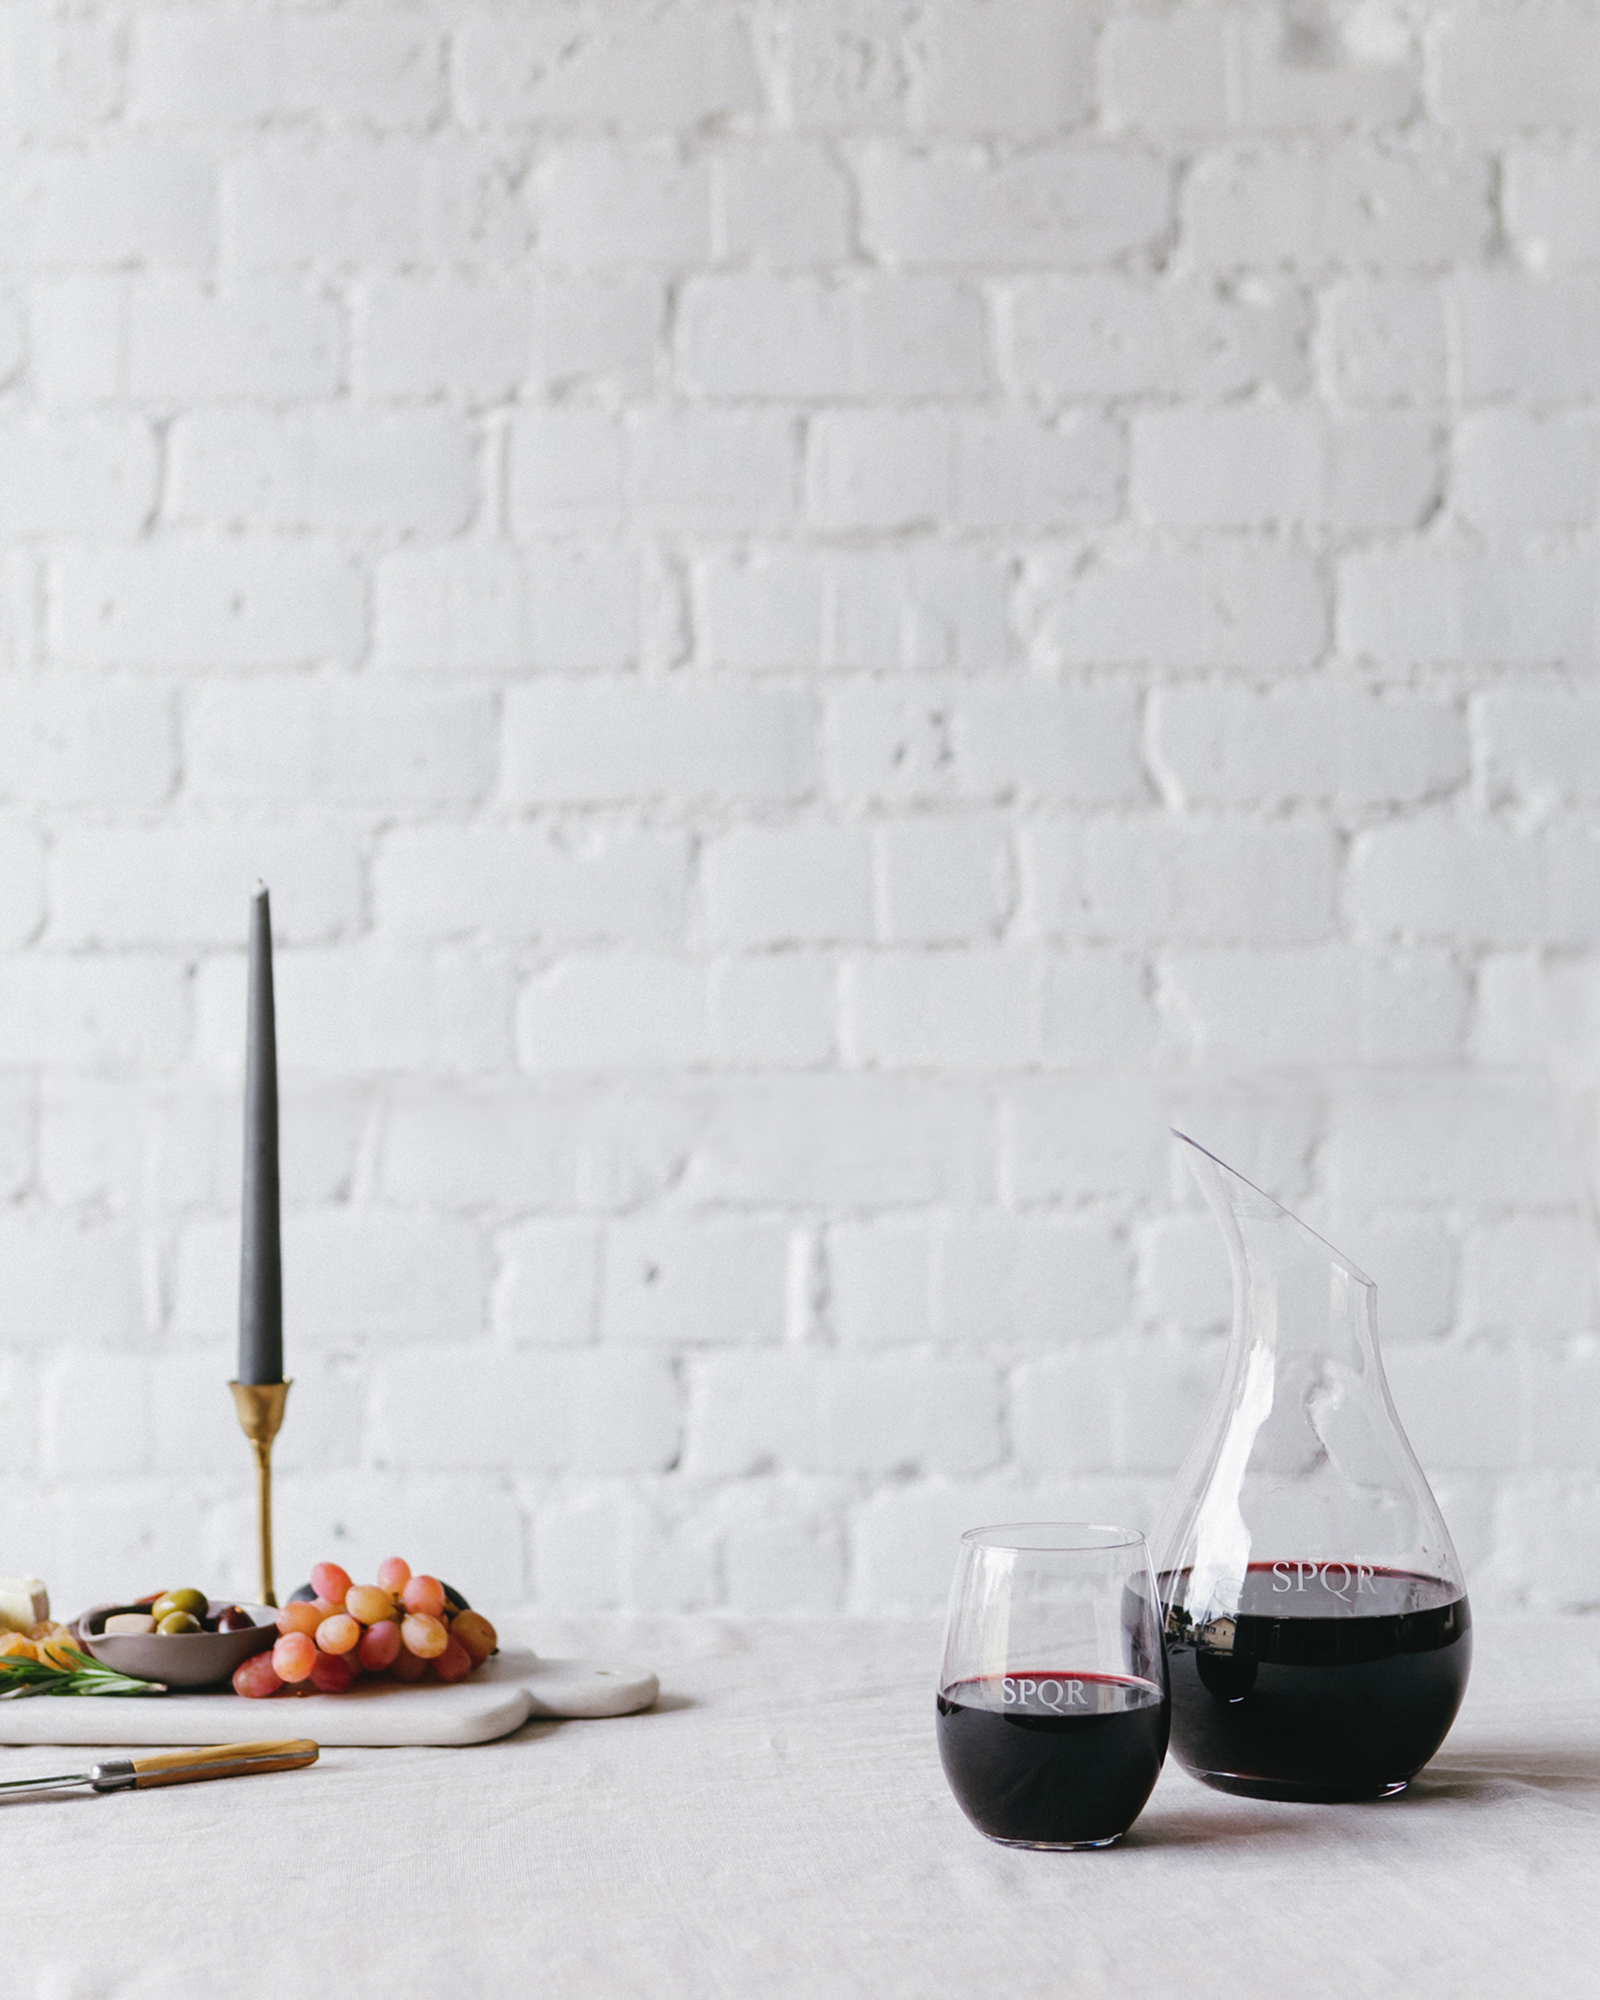 host a wine night inspired by your travels with custom decanters and wine glasses! // anne sage